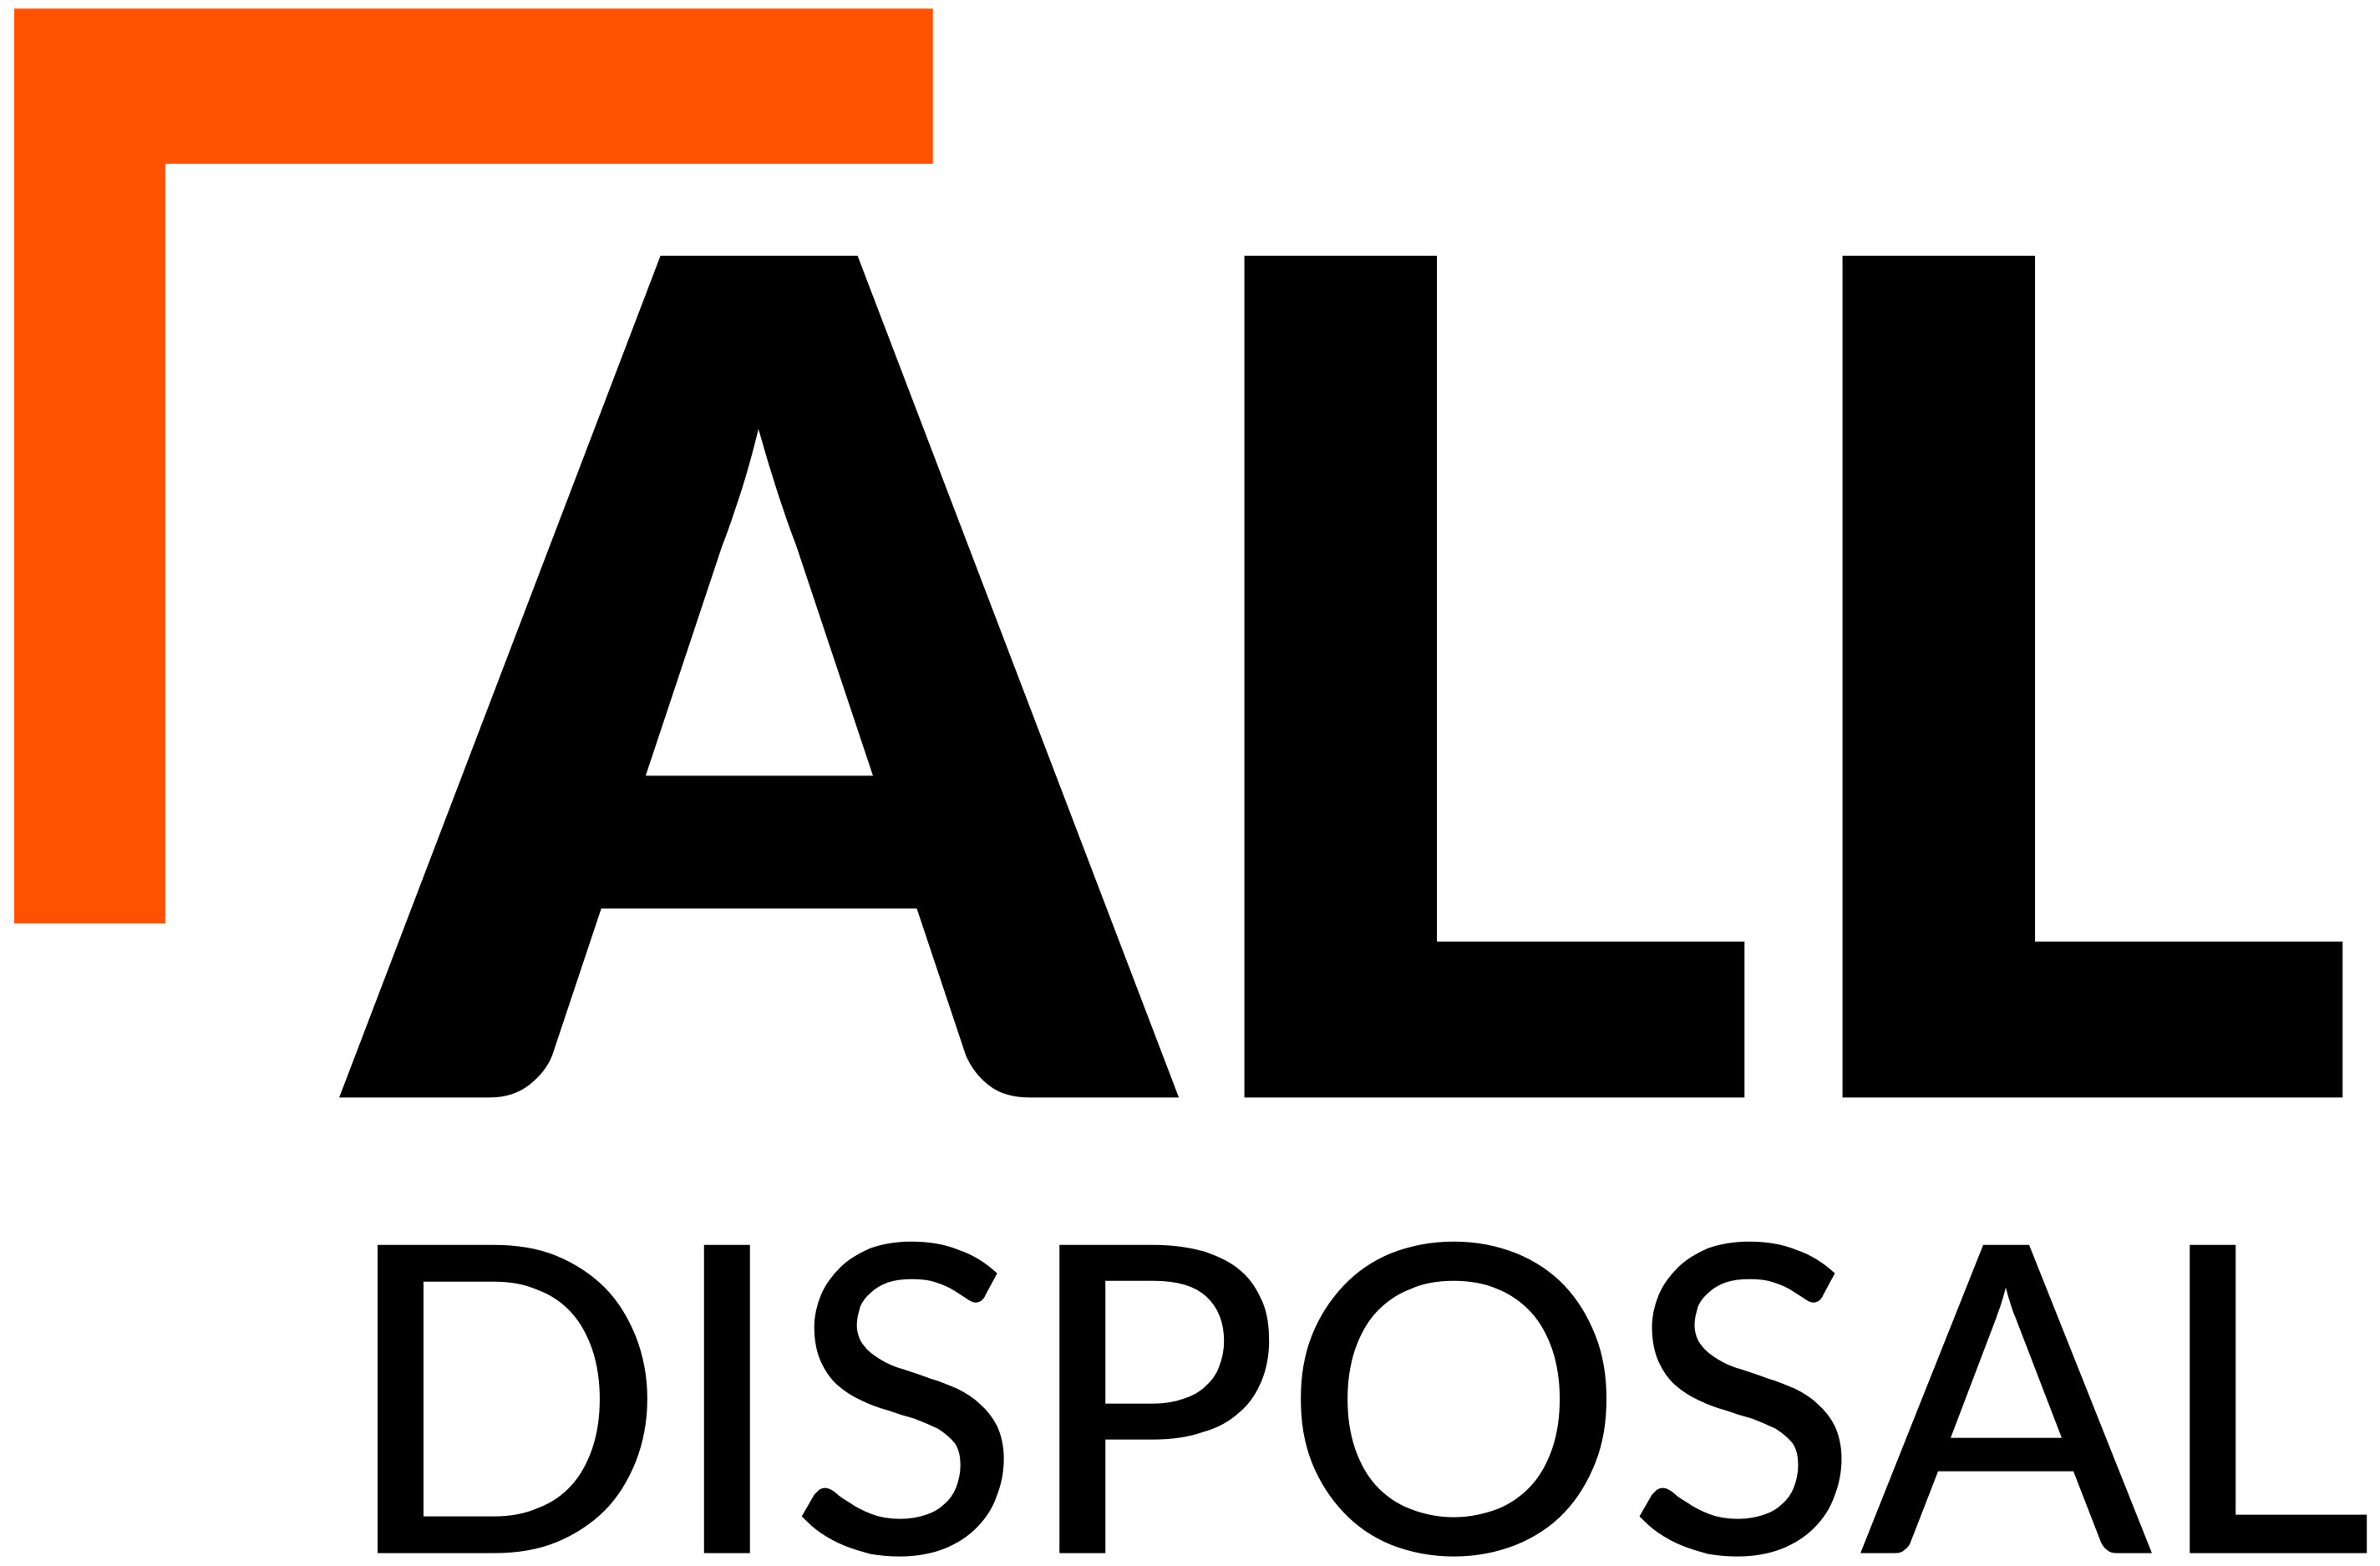 All Disposal